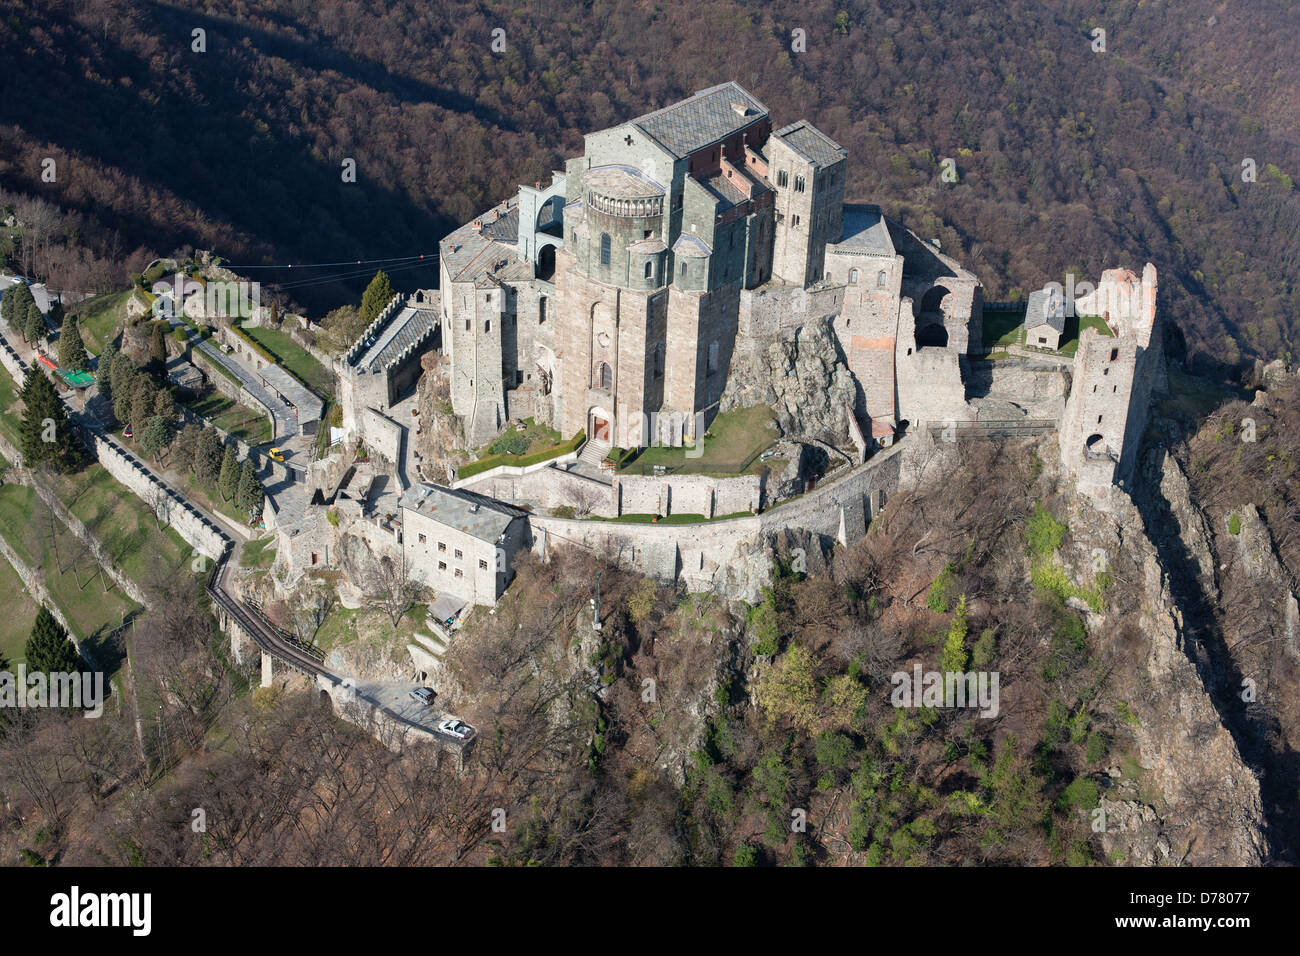 SACRA DI SAN MICHELE (aerial view). Abbey on a rocky promontory, high above the Susa Valley, in western Piedmont, - Stock Image